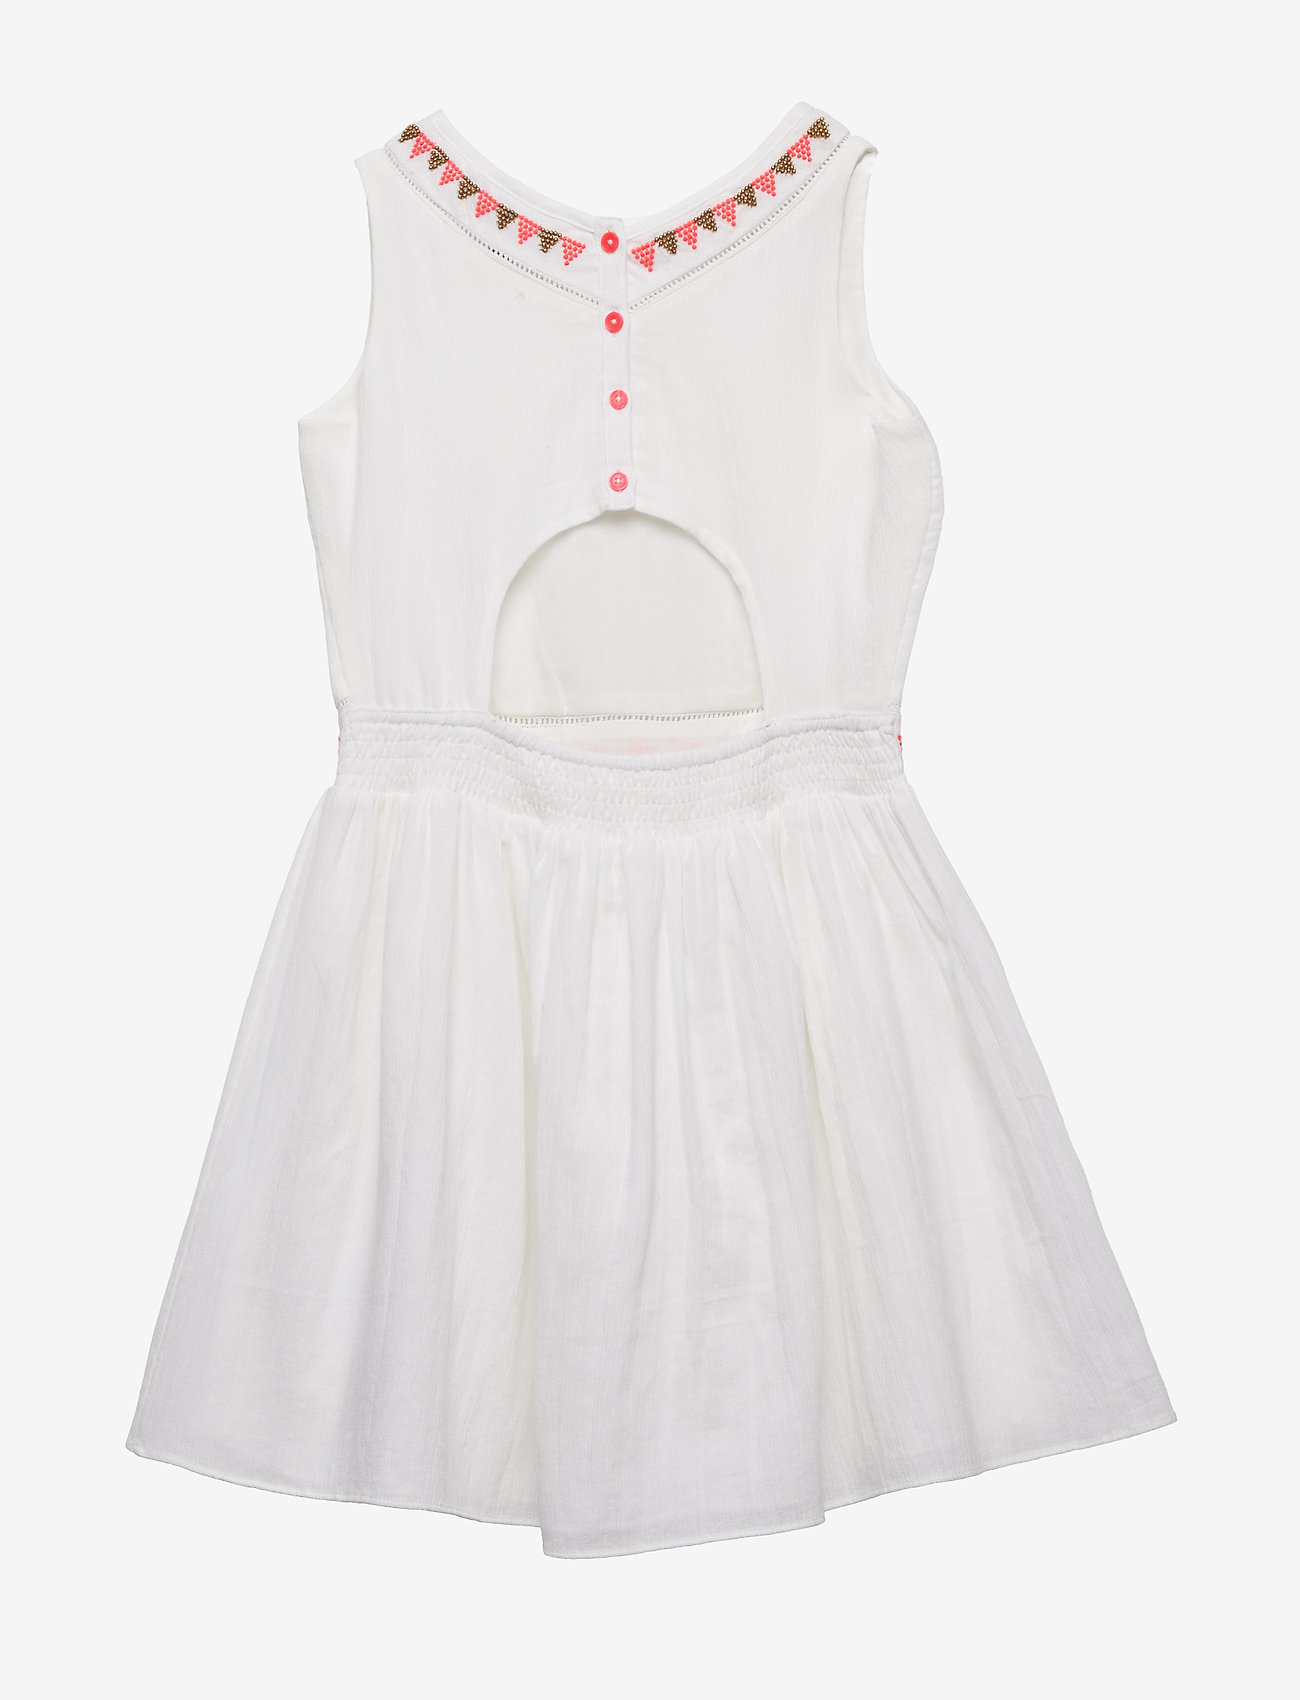 Tommy Hilfiger - ENDEARING SUN DRESS - dresses - bright white - 1